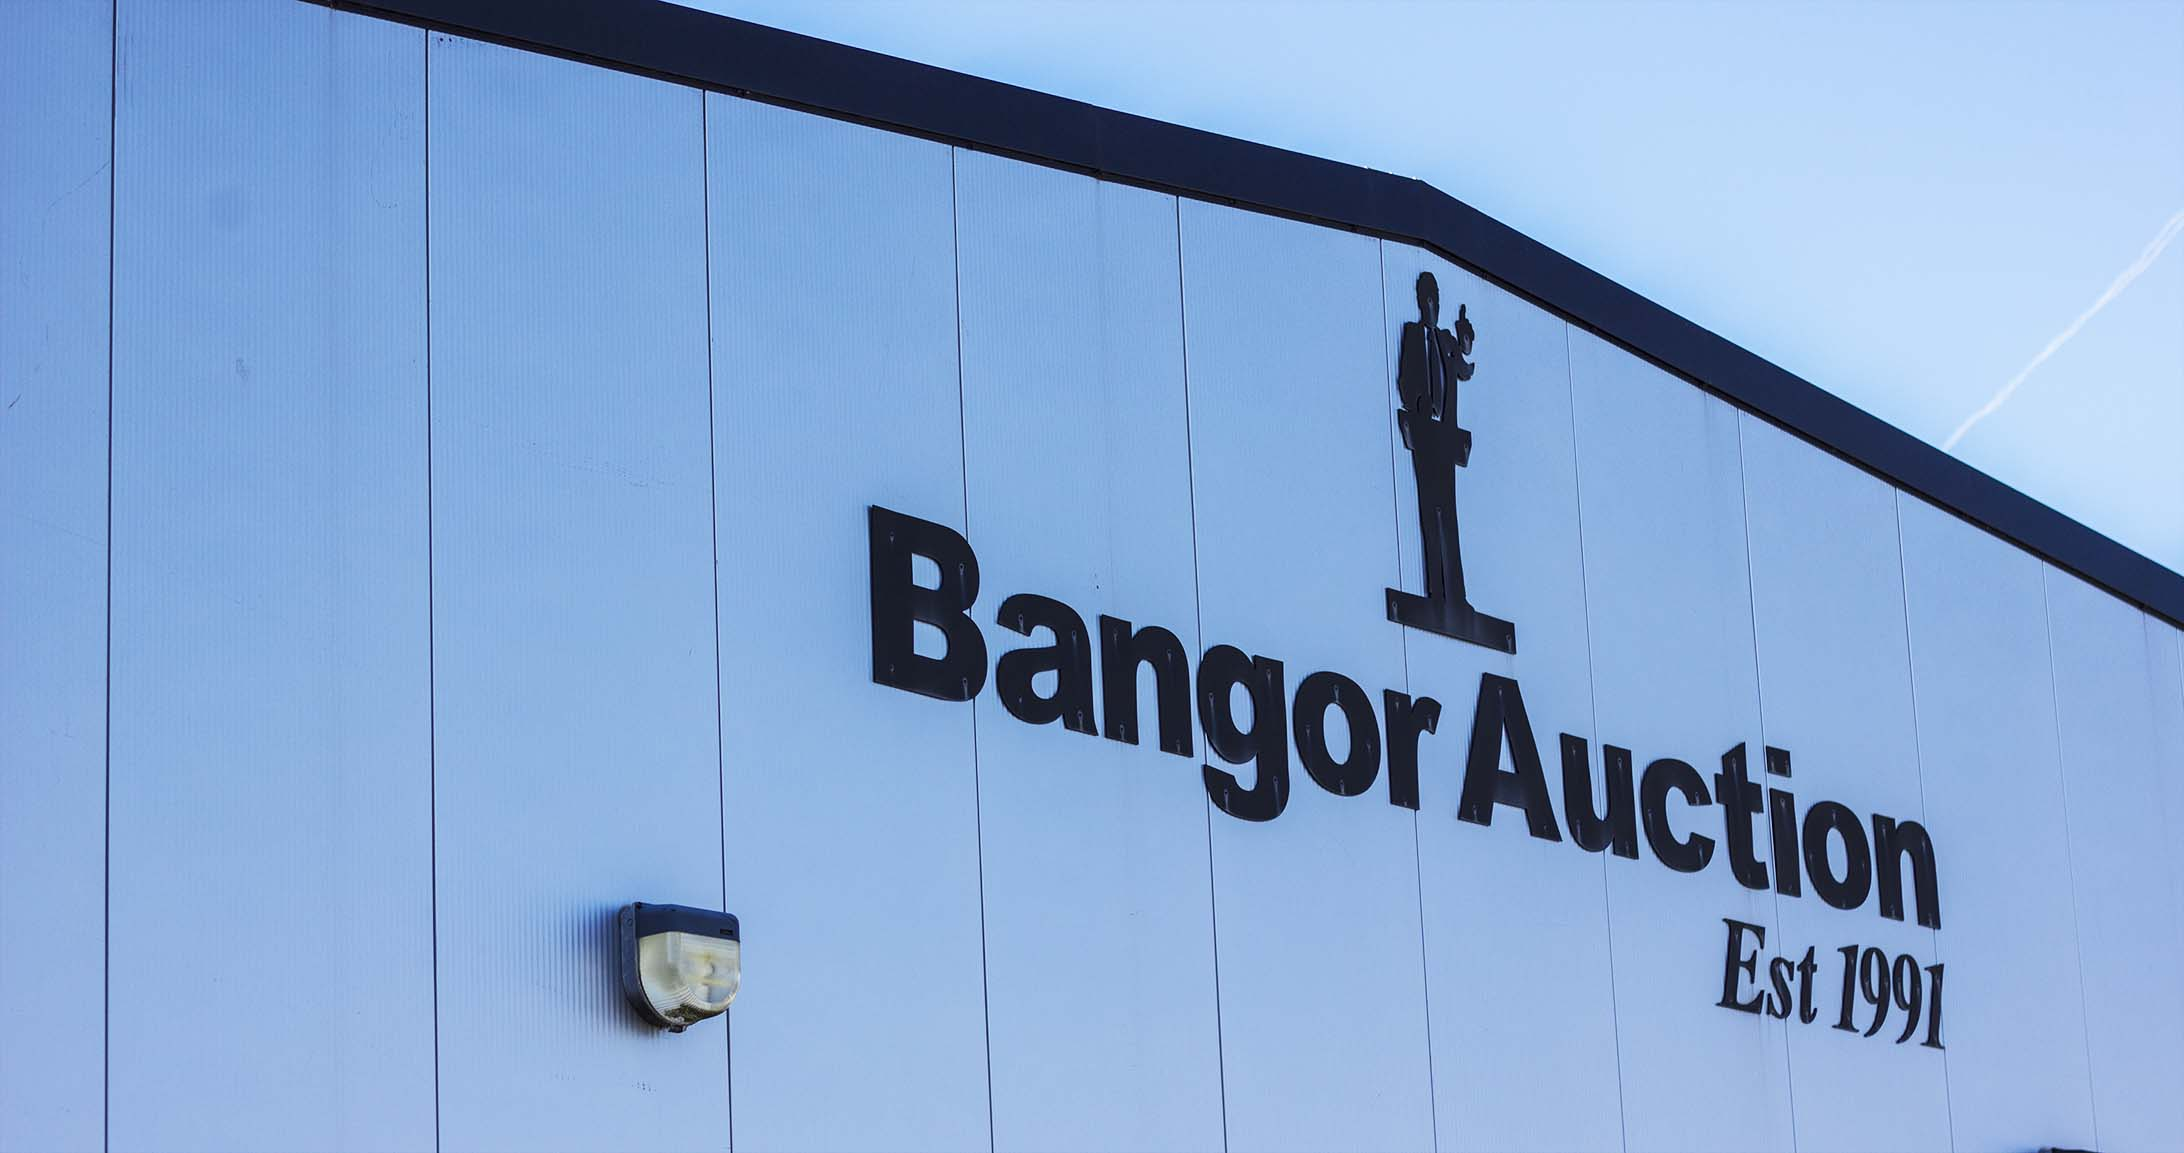 Bangor Auctions Services